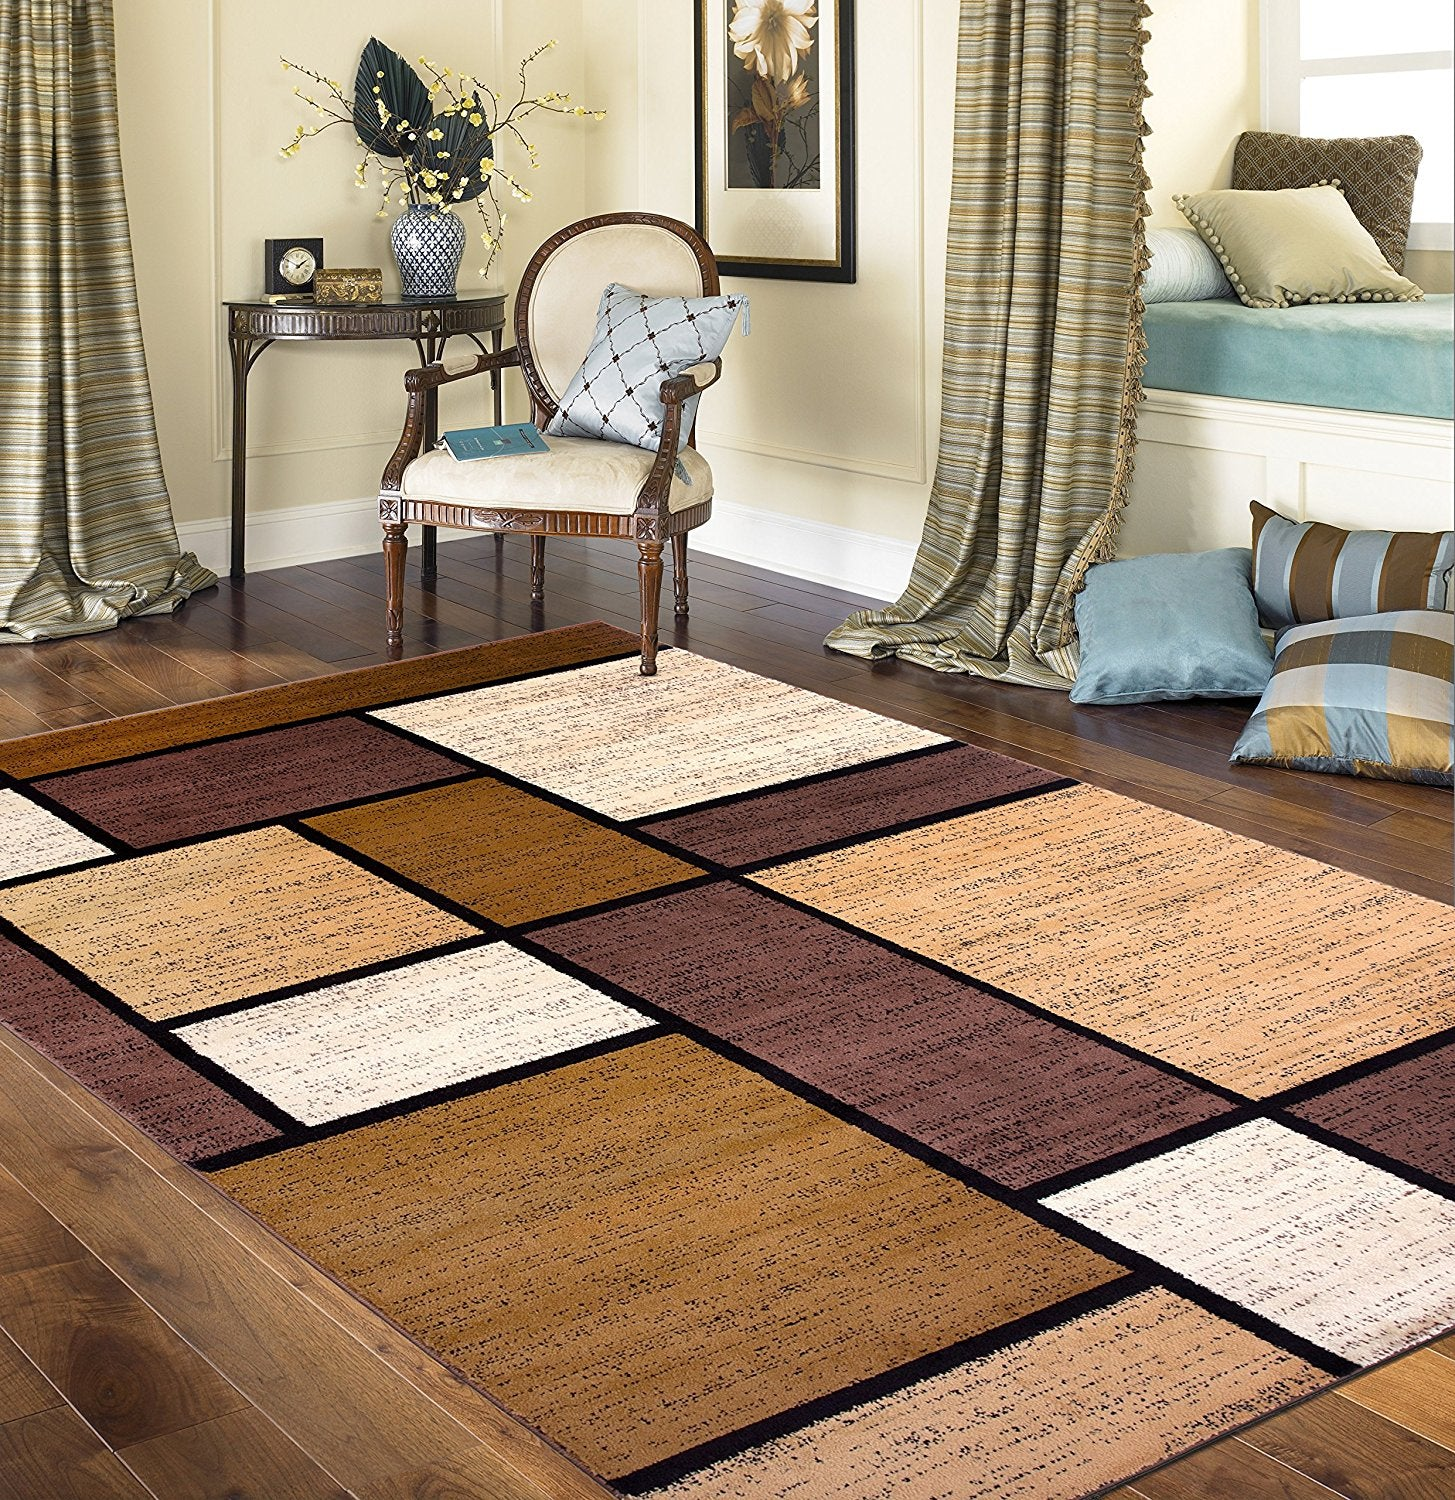 Contemporary Box Pattern Modern Brown Tan White Area Rug Modern Rugs And Decor